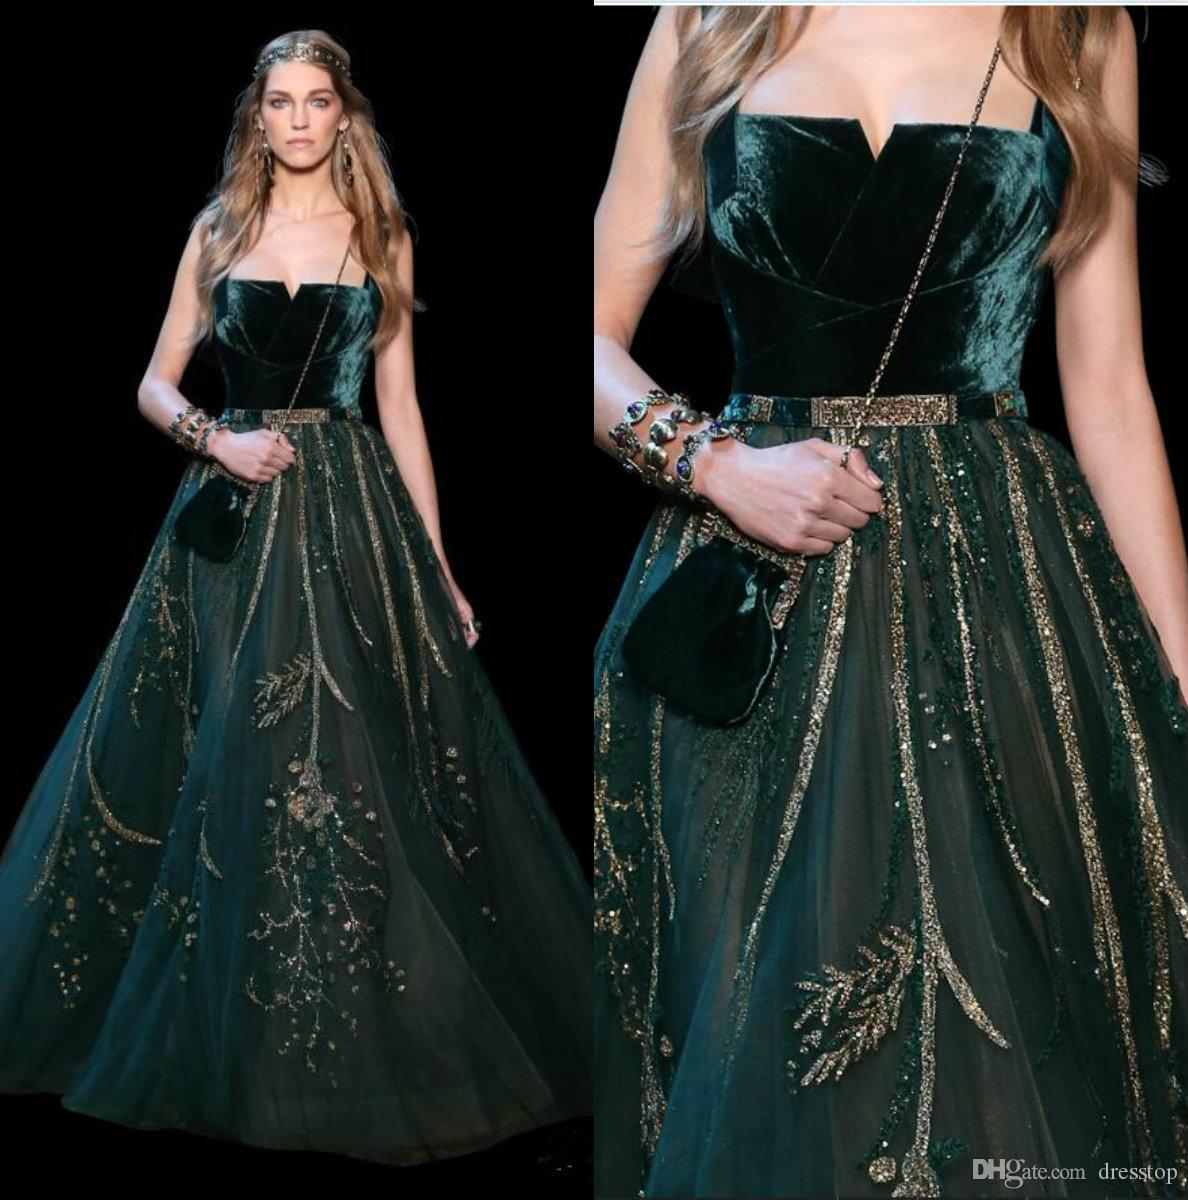 Luxury Forest Green Formal Evening Dresses Strapless Backless